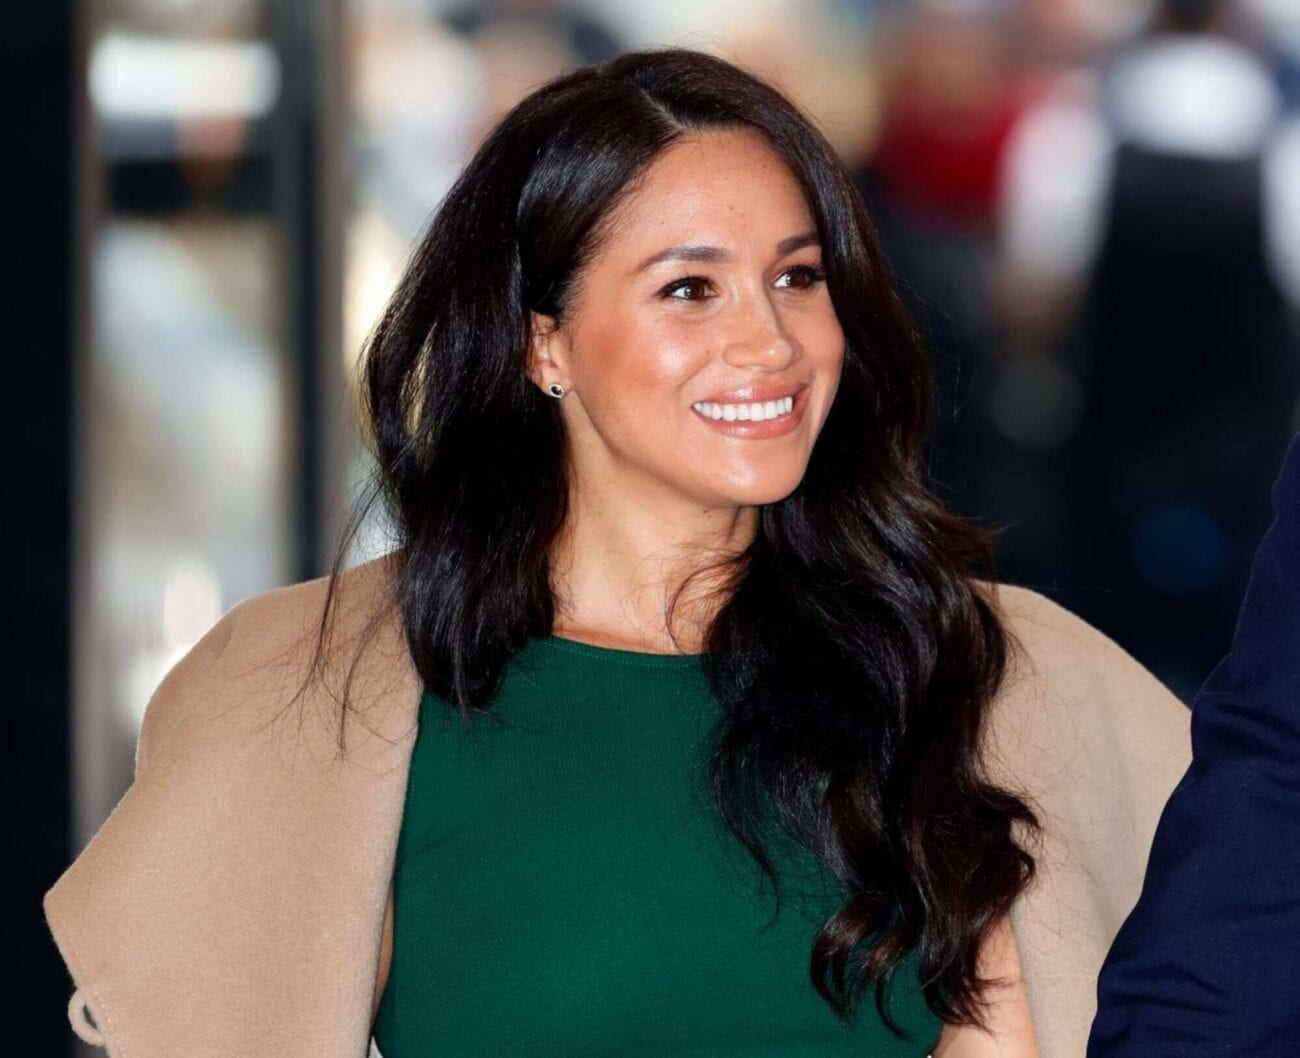 Did you hear the news that Meghan Markle is now a children's author? If you've got any little ones of your own, check out all the deets about her book here.